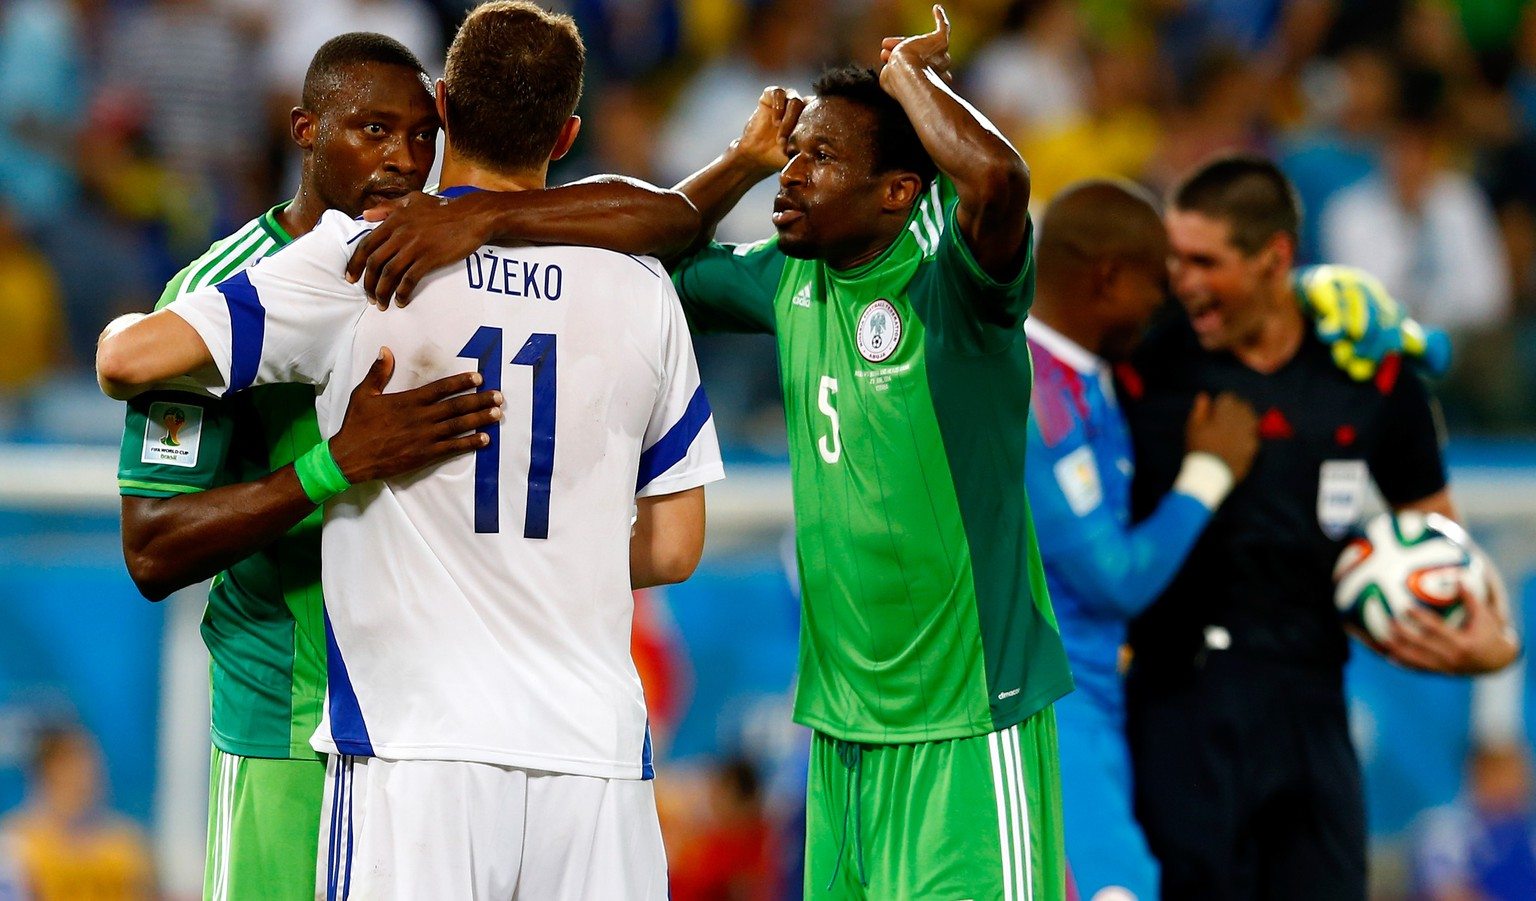 CUIABA, BRAZIL - JUNE 21:  Shola Ameobi of Nigeria hugs Edin Dzeko of Bosnia and Herzegovina after a 1-0 Nigeria win during the 2014 FIFA World Cup Group F match between Nigeria and Bosnia-Herzegovina at Arena Pantanal on June 21, 2014 in Cuiaba, Brazil.  (Photo by Matthew Lewis/Getty Images)